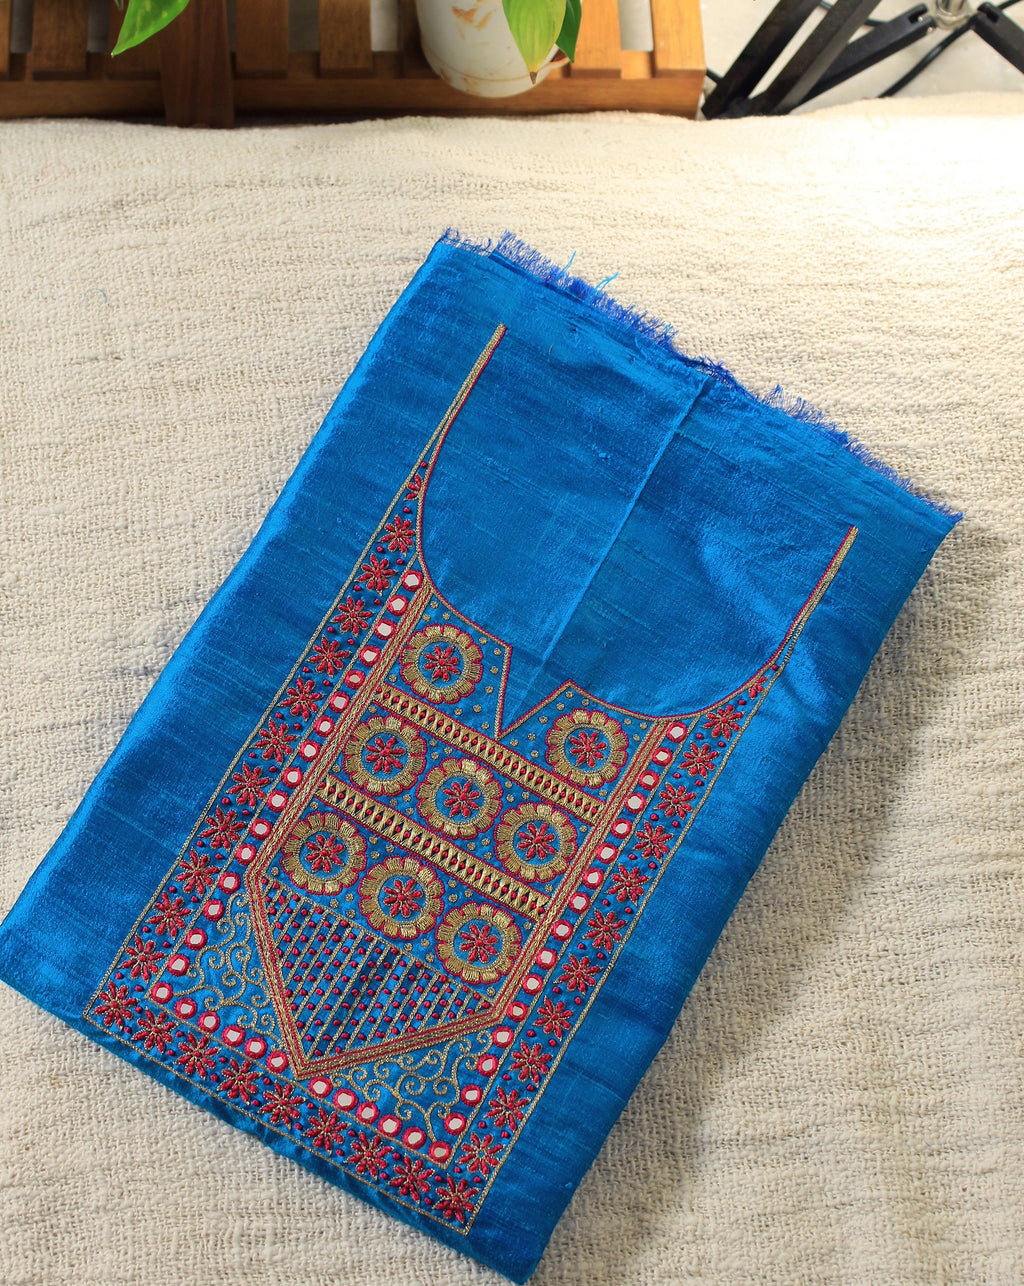 Blue Hand Embroidered Handloom Raw Silk Fabric for Kurti